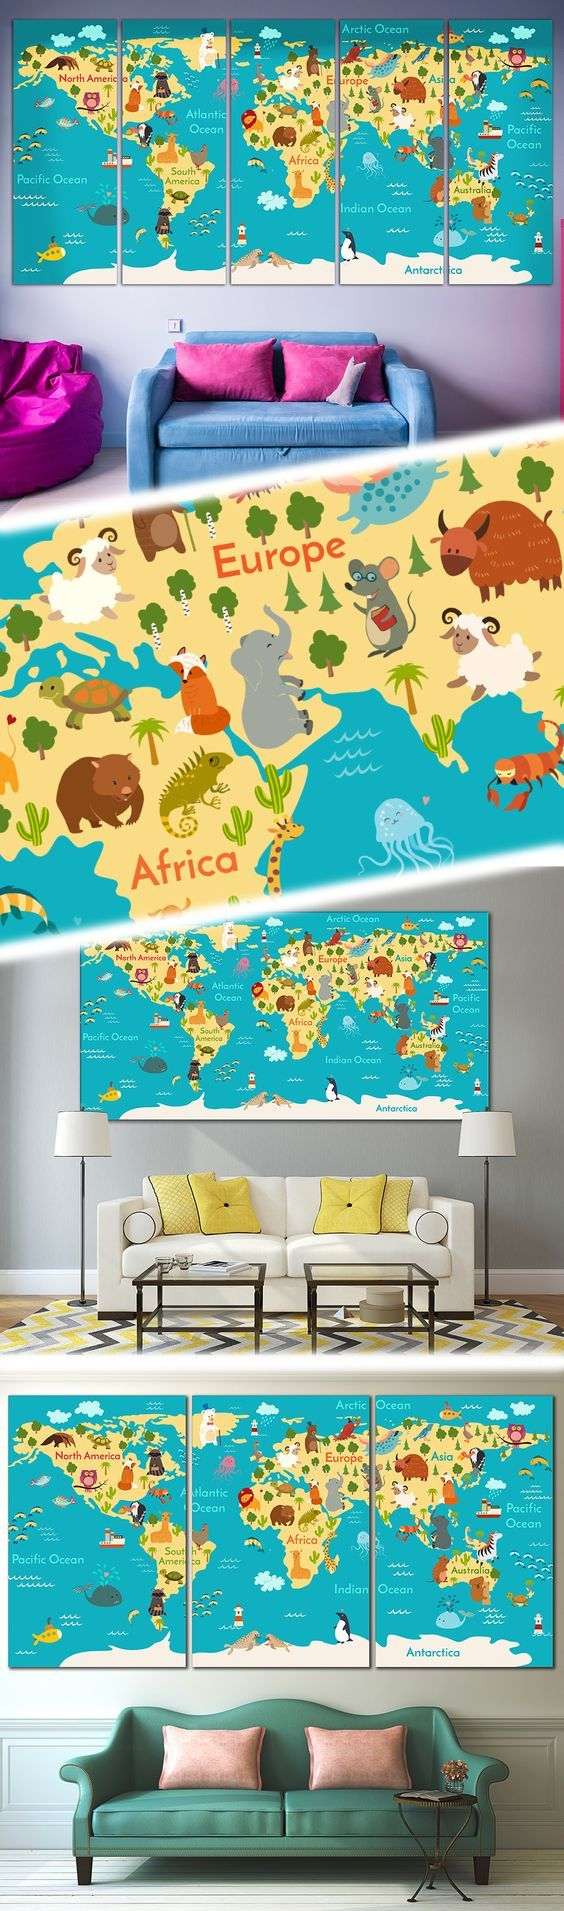 Extra large Animal World Map Wall Art for Kids room wall decoration.